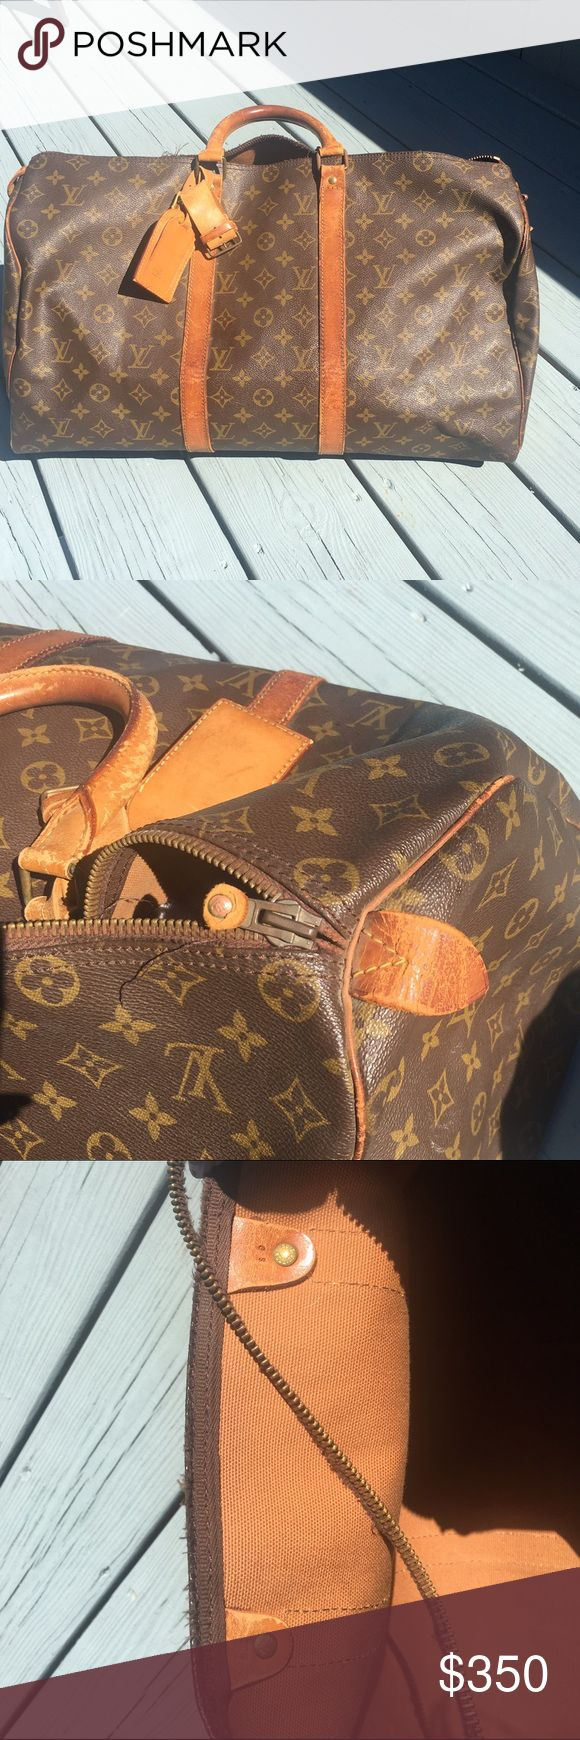 Vintage Louis Vuitton Keepall 45! (80's) Sad to see this beauty go. As you can see the entire zipper will need to be replaced. This bag does need some love and unfortunately i don't have the time. The inside is in near perfect condition with no spots or stains. Feel free to ask any questions before you purchase! ❤️❤️❤️ Louis Vuitton Bags Travel Bags